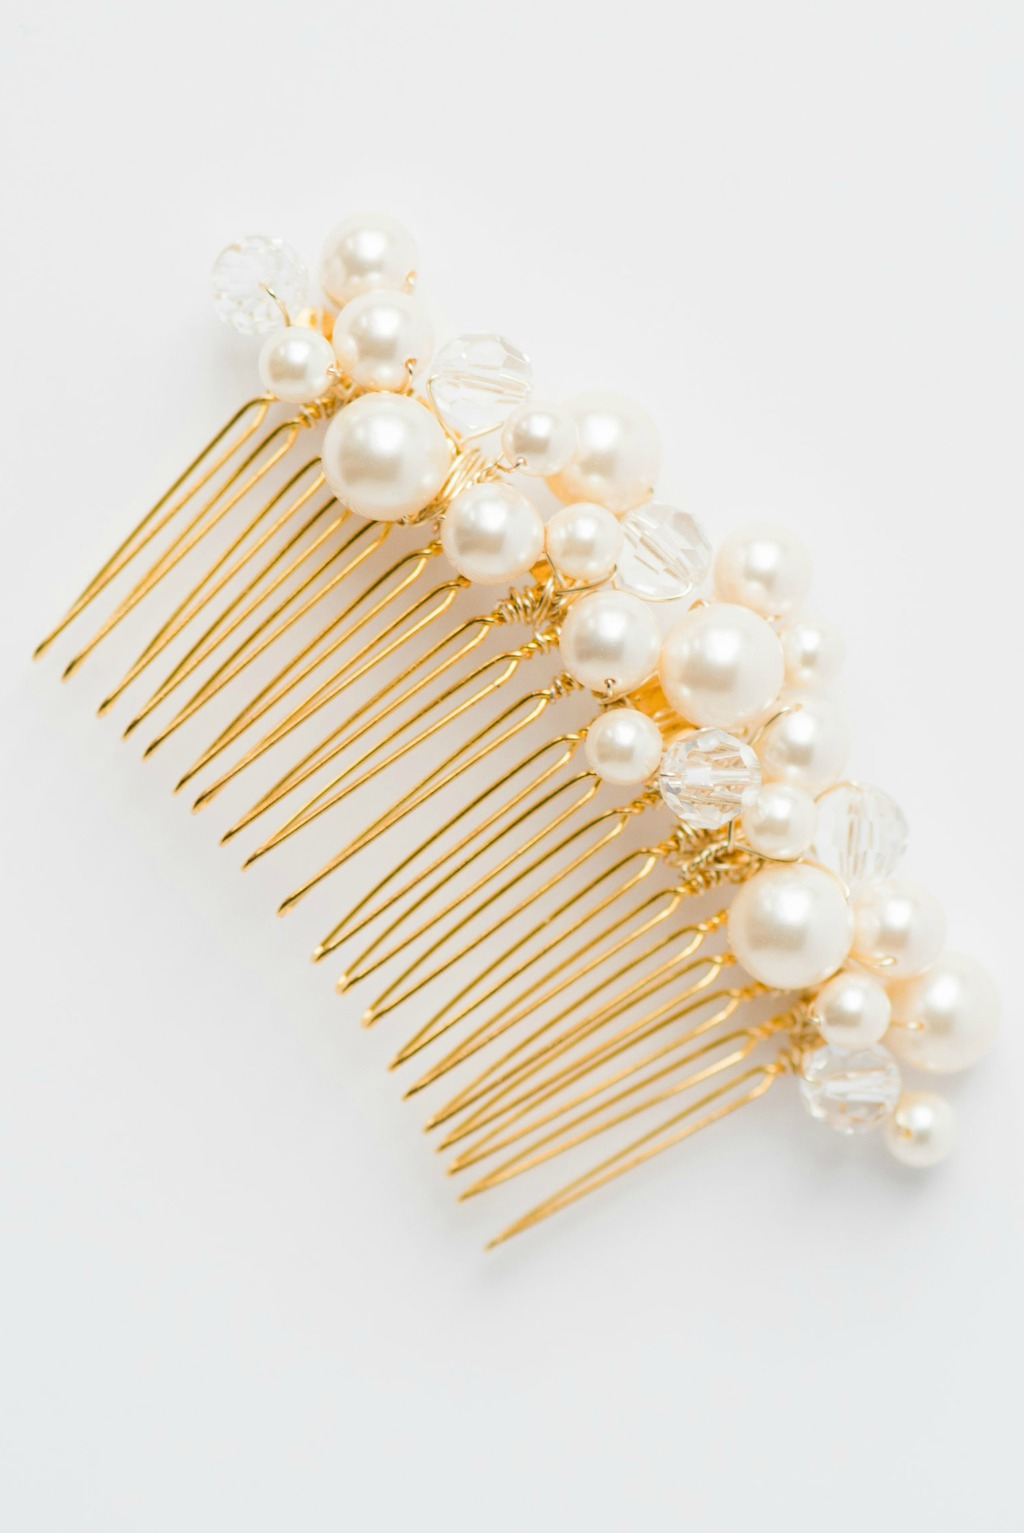 Classic Crystal & Pearl Bridal Comb in Gold by J'Adorn Designs bridal accessories